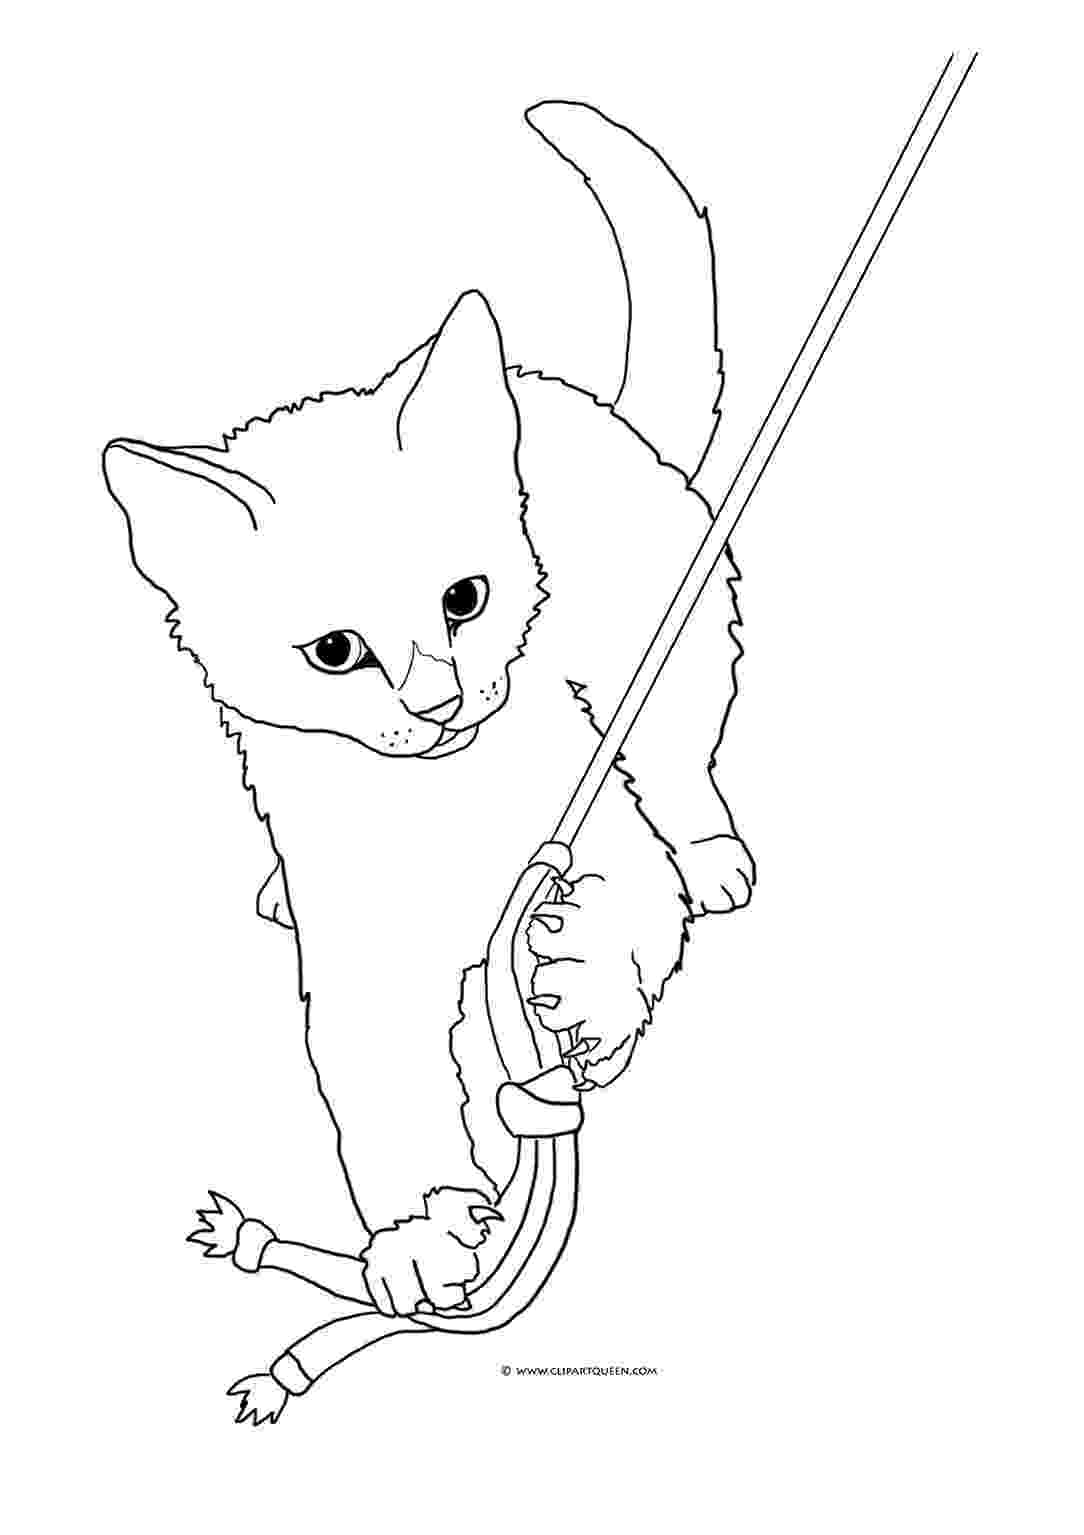 cat and kitten coloring pages cat and dog coloring pages to download and print for free cat coloring pages kitten and